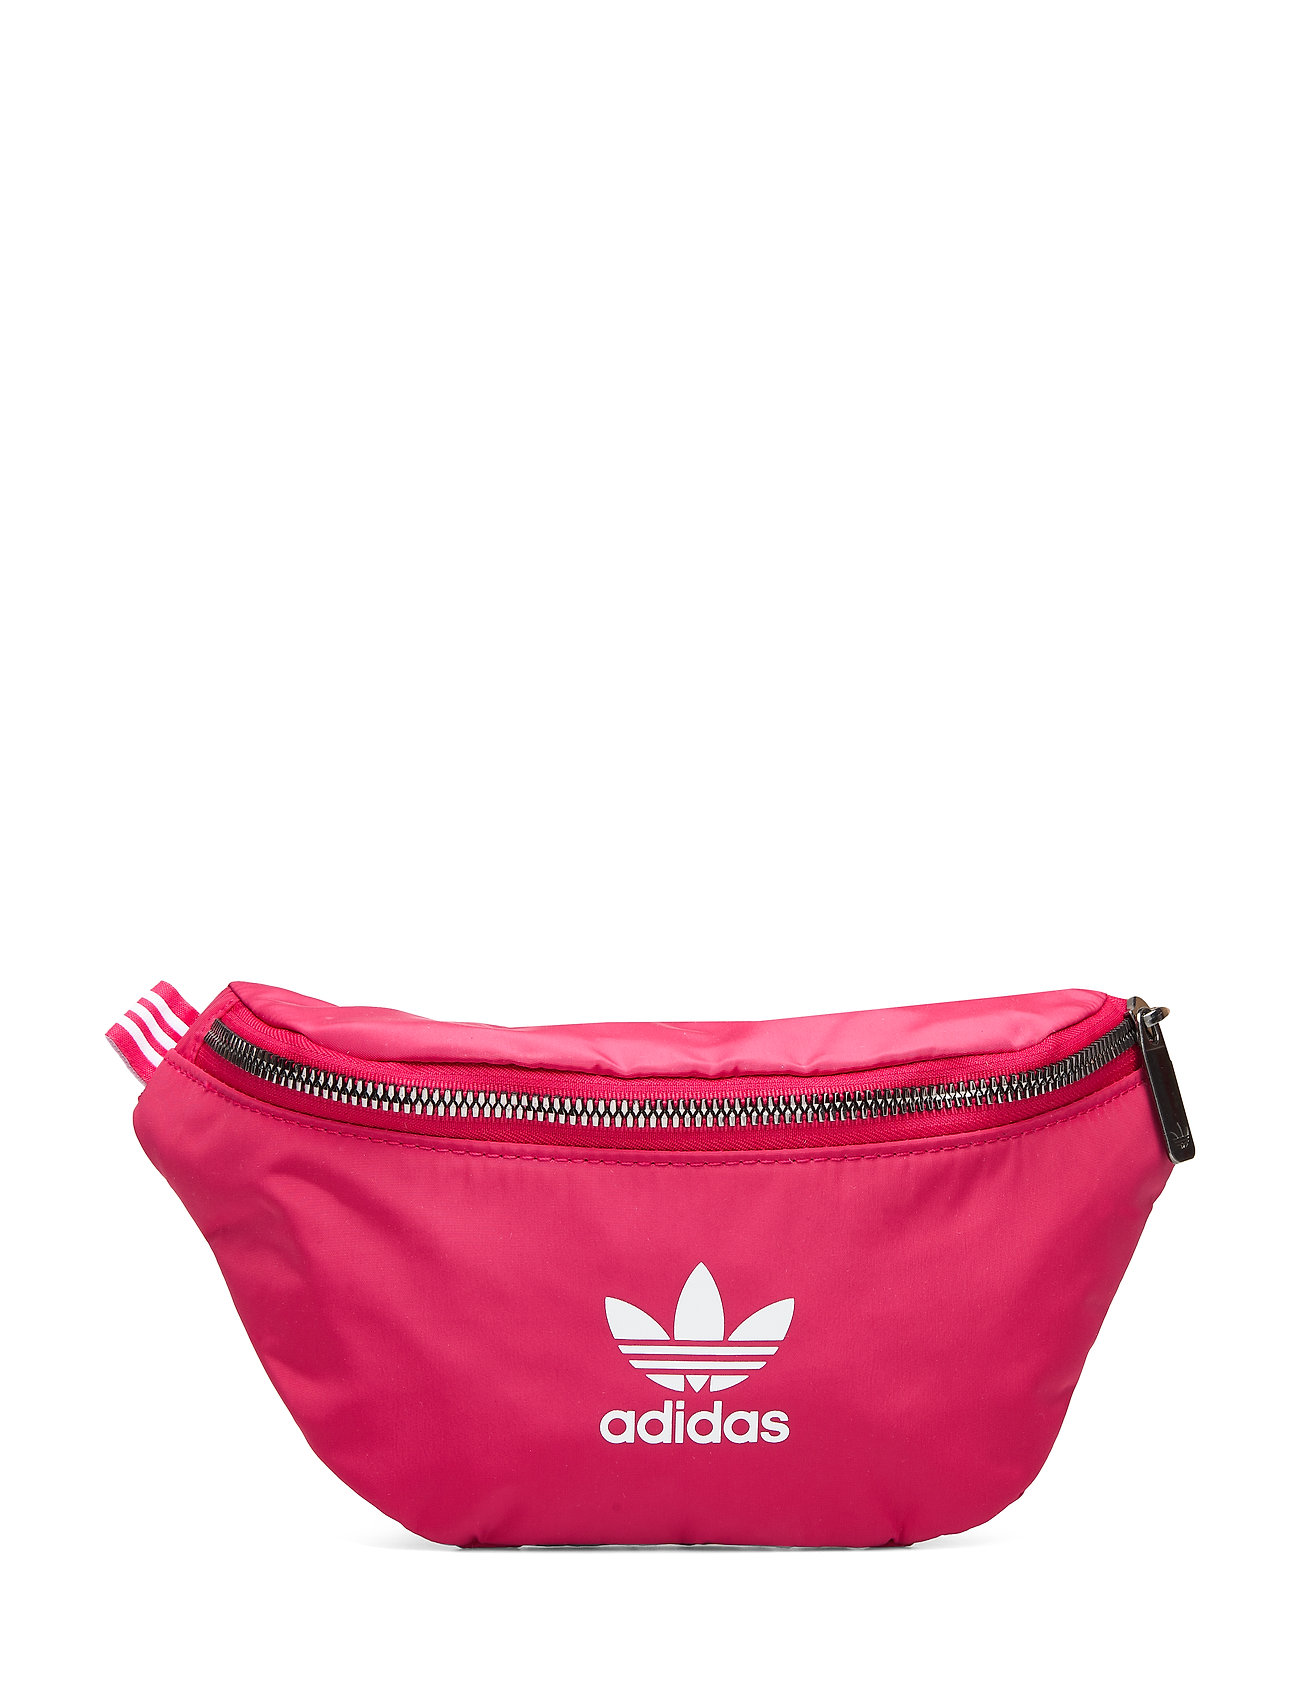 adidas Originals WAISTBAG - ENEPNK